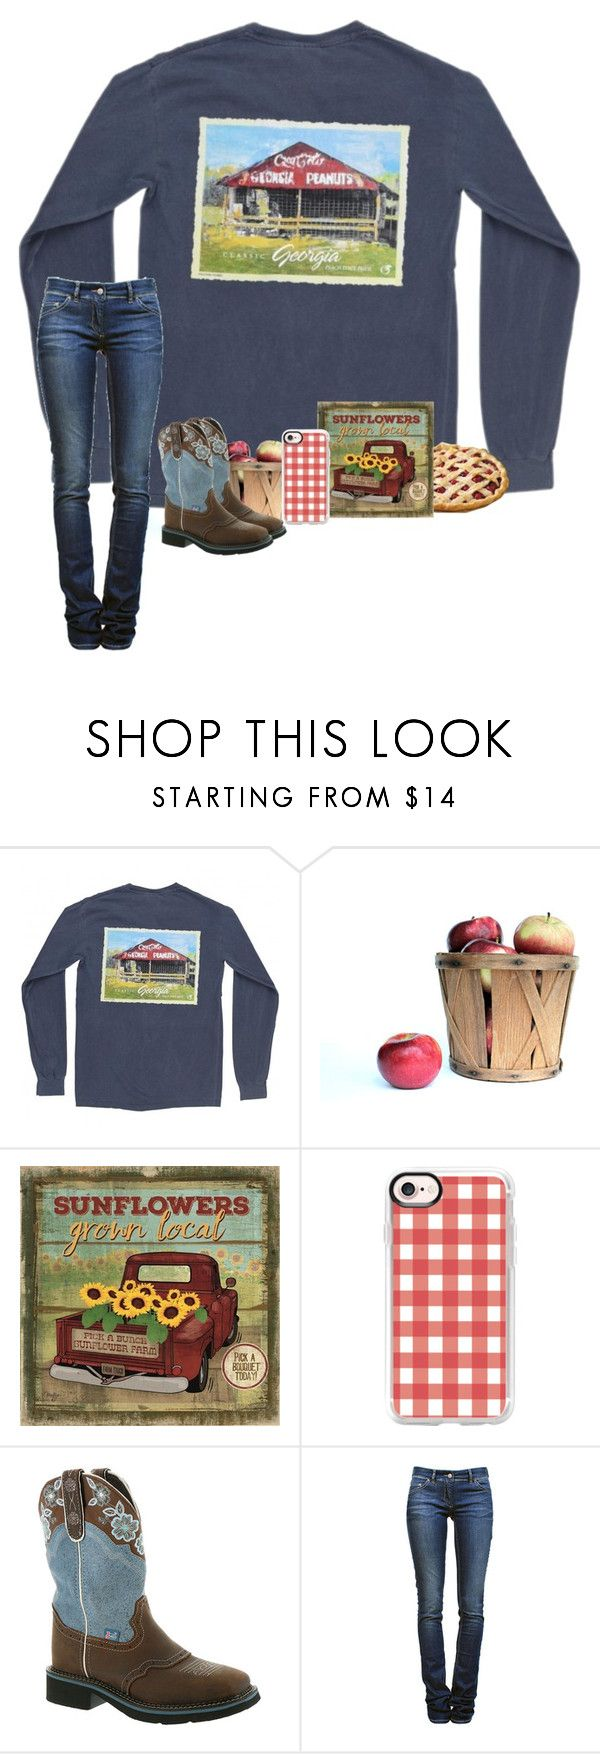 """2 Days Of School This Week!"" by brookespreppy ❤ liked on Polyvore featuring DutchCrafters, Casetify, Justin Boots, Étoile Isabel Marant, casual, Boots, preppy, southern and polyvorefashion"